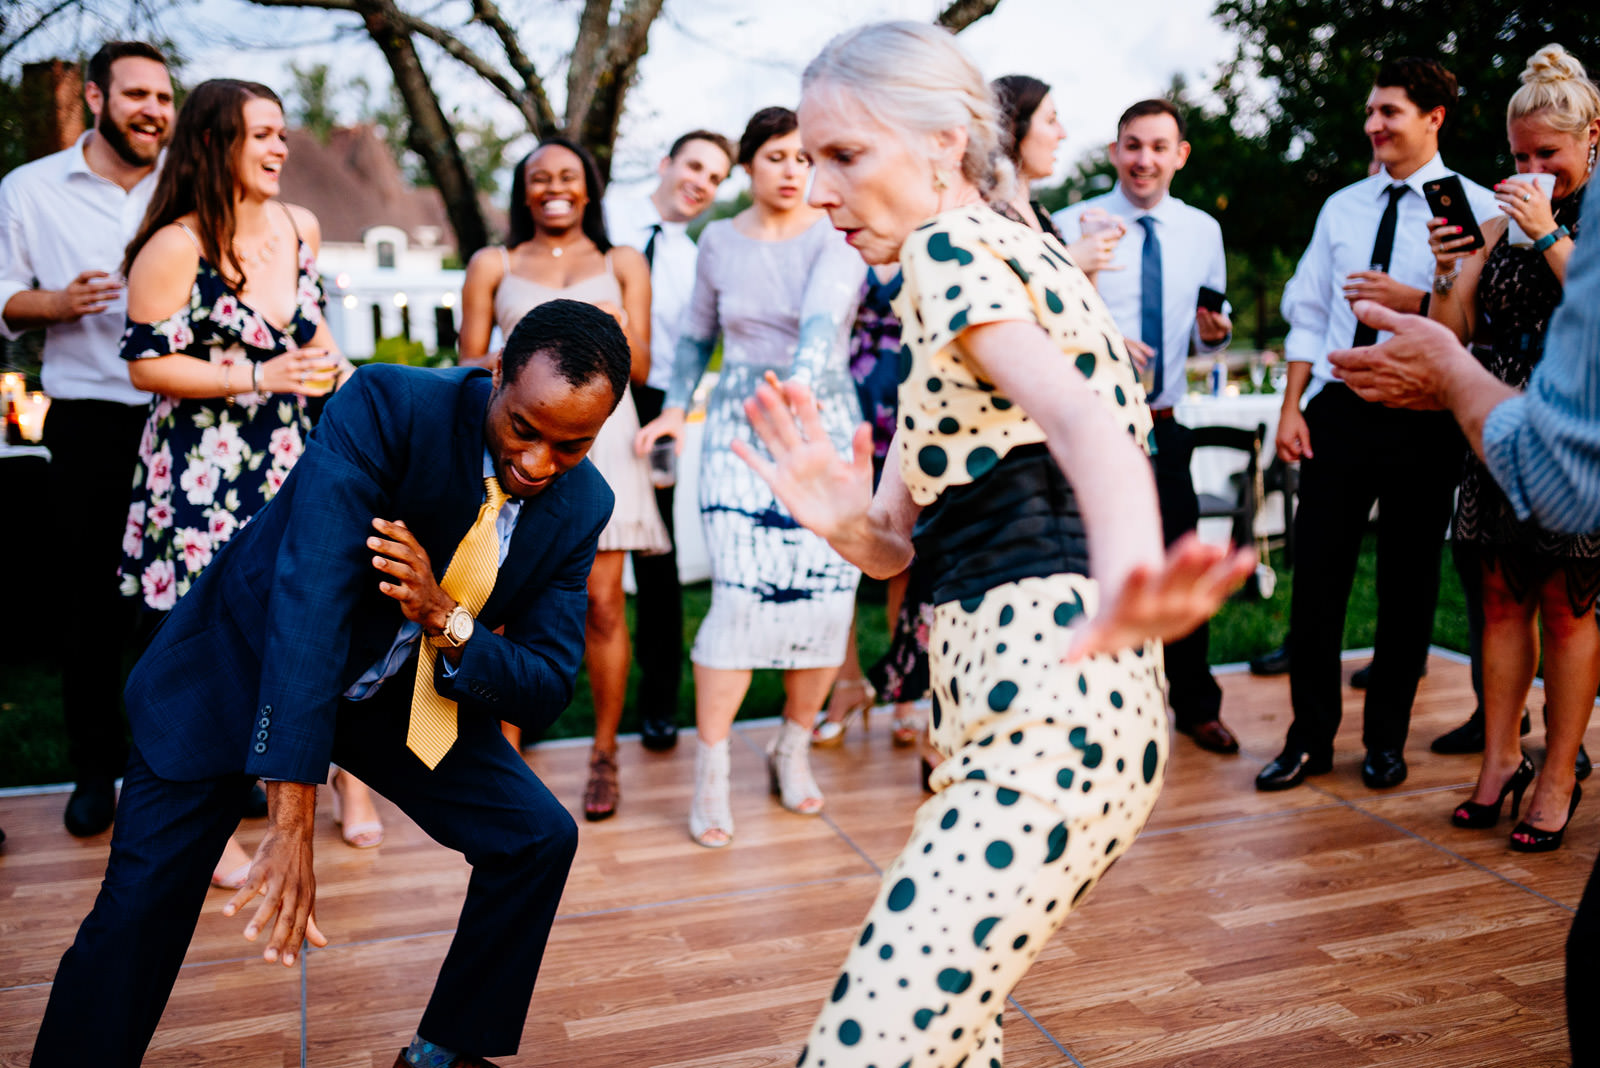 guests dancing during outdoor wedding reception